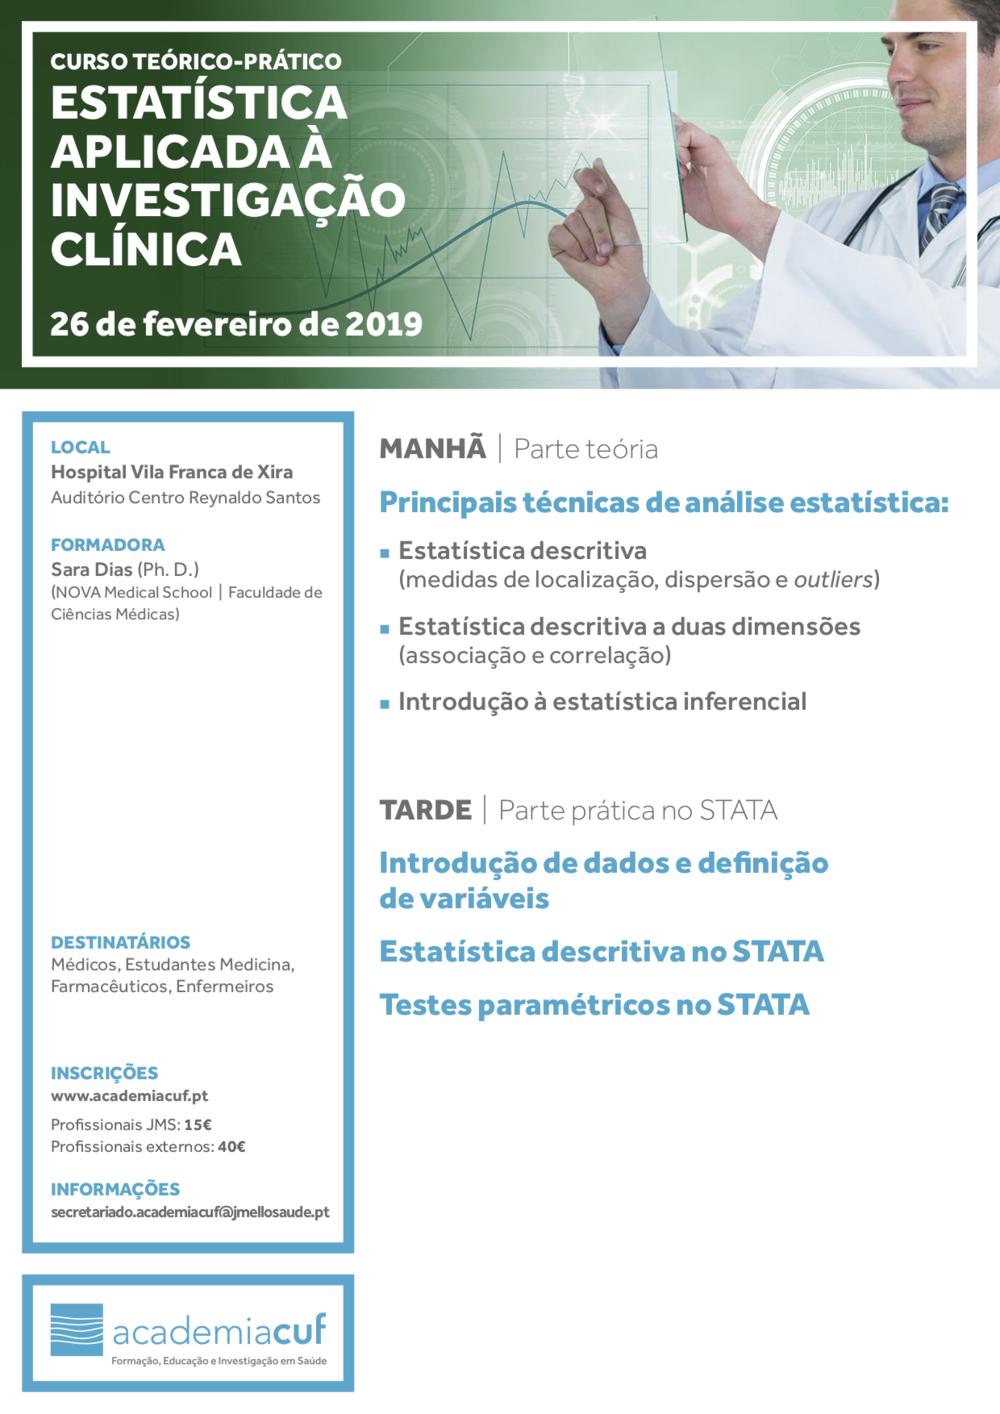 26 de fevereiro - Hospital de Vila Franca de Xira   Inscrições:  https://academiacuf.up.events/activities/view/2176